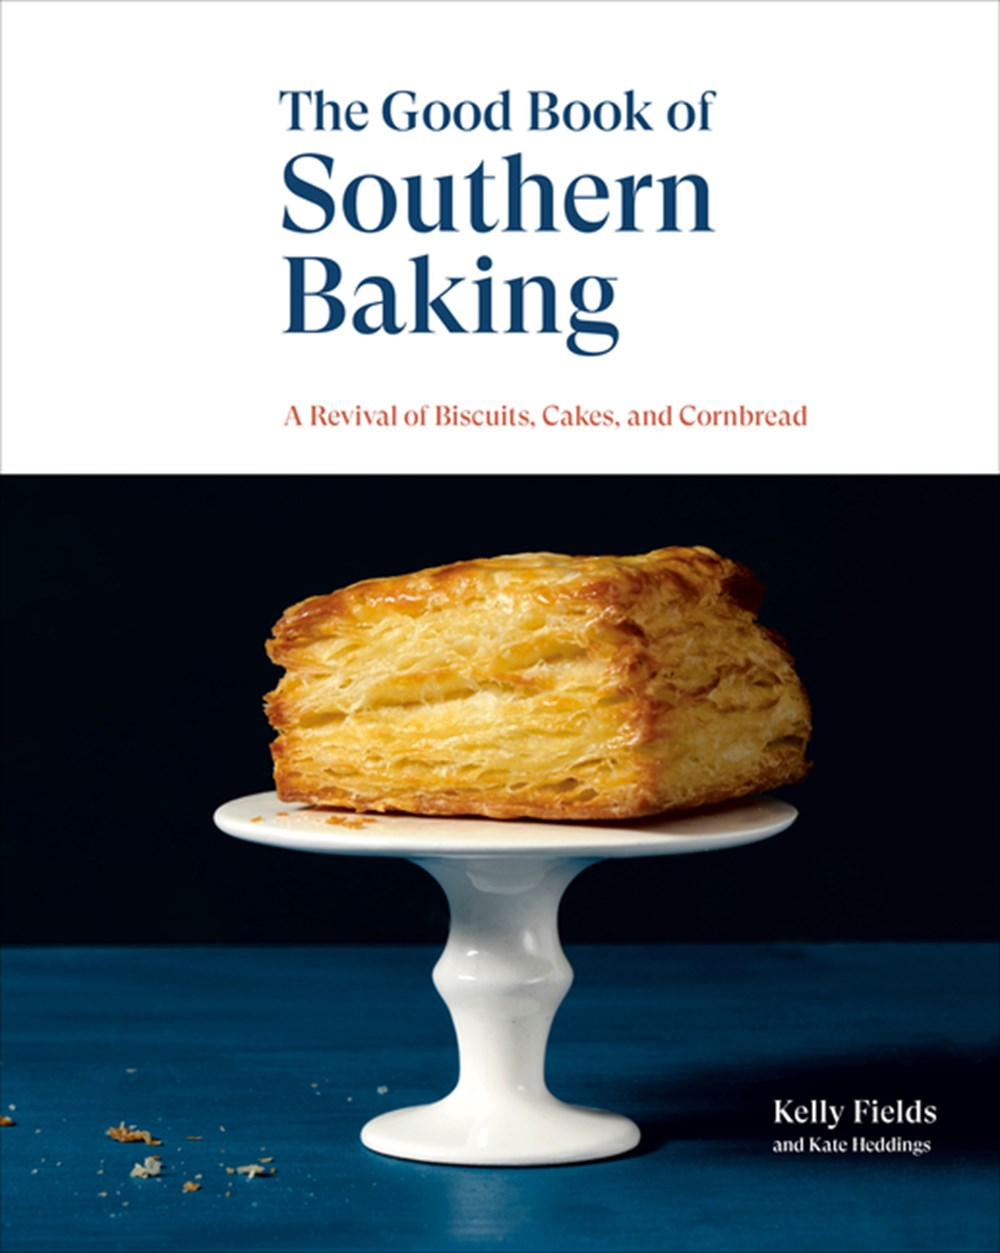 Good Book of Southern Baking A Revival of Biscuits, Cakes, and Cornbread